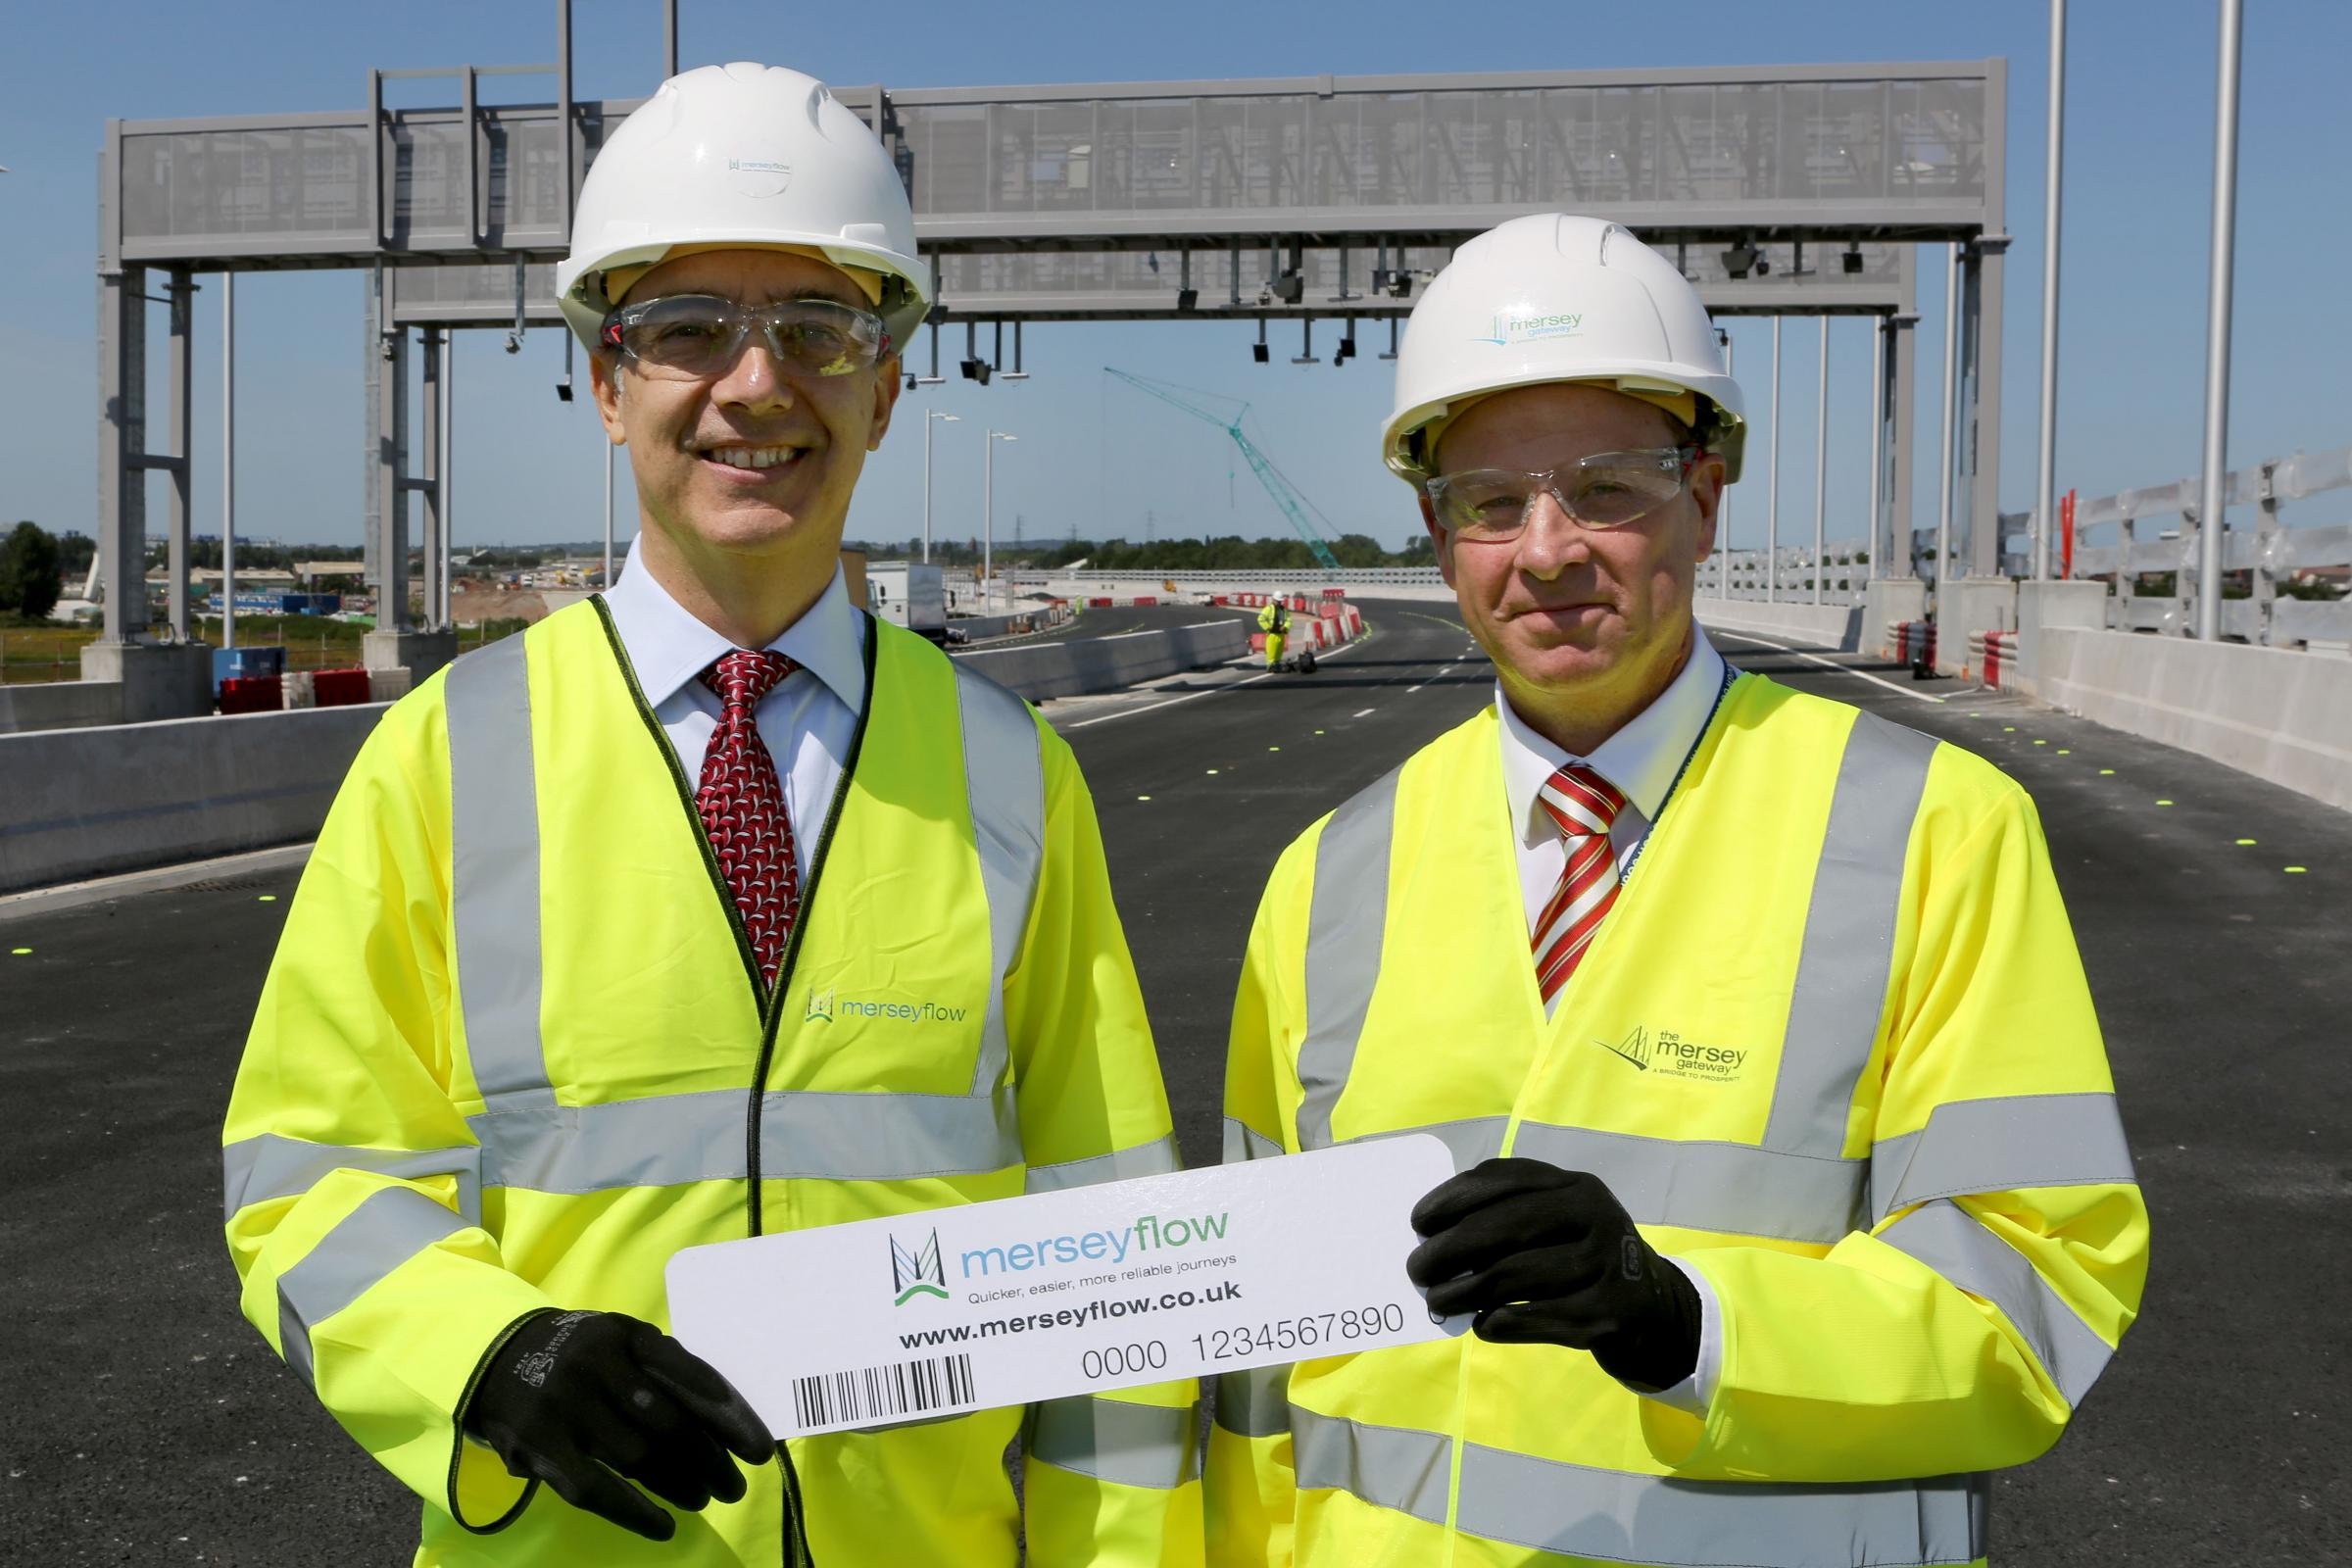 David Parr, chief executive of Halton Borough Council, and Anthony Alicastro, managing director of Merseyflow, in front of the Merseyflow tolling gantry